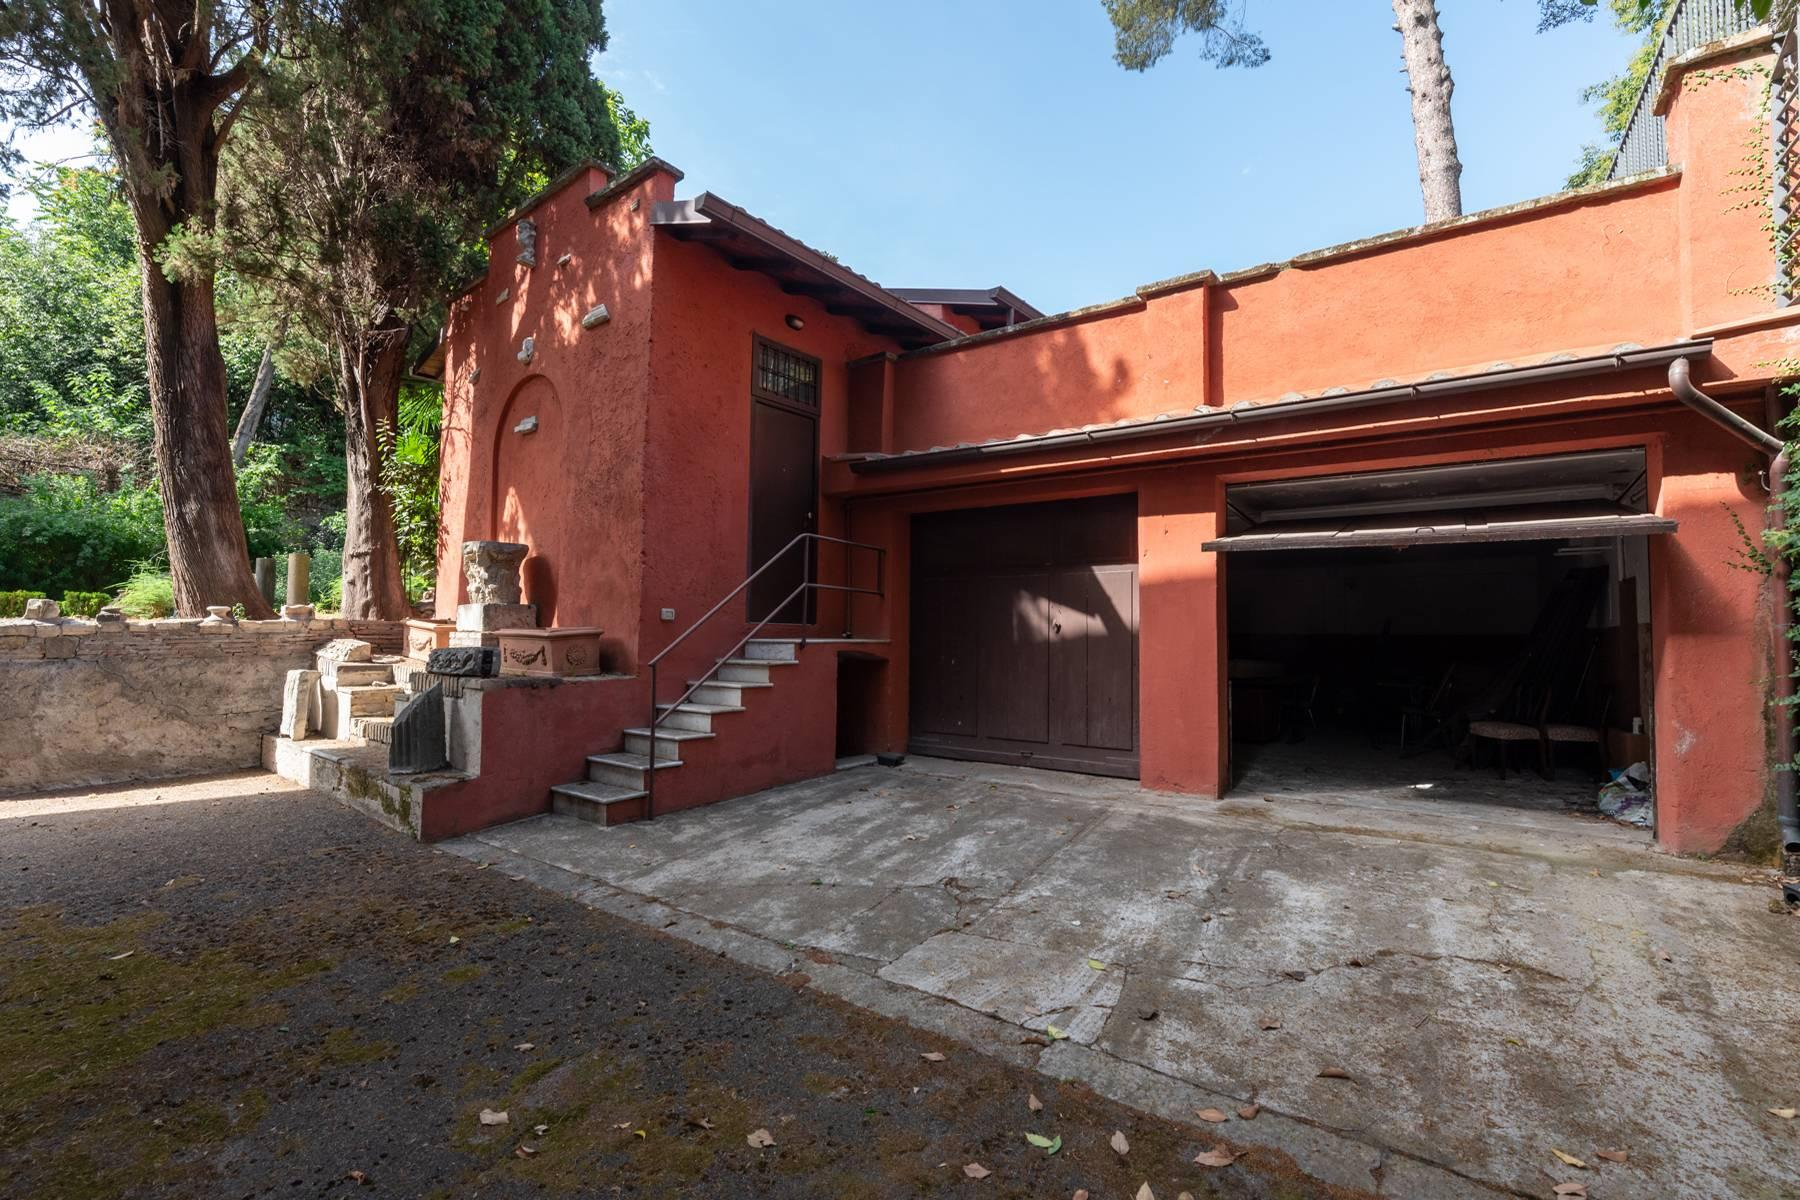 Elegant classical  Villa in the heart of Rome's archaeological ruins - 27